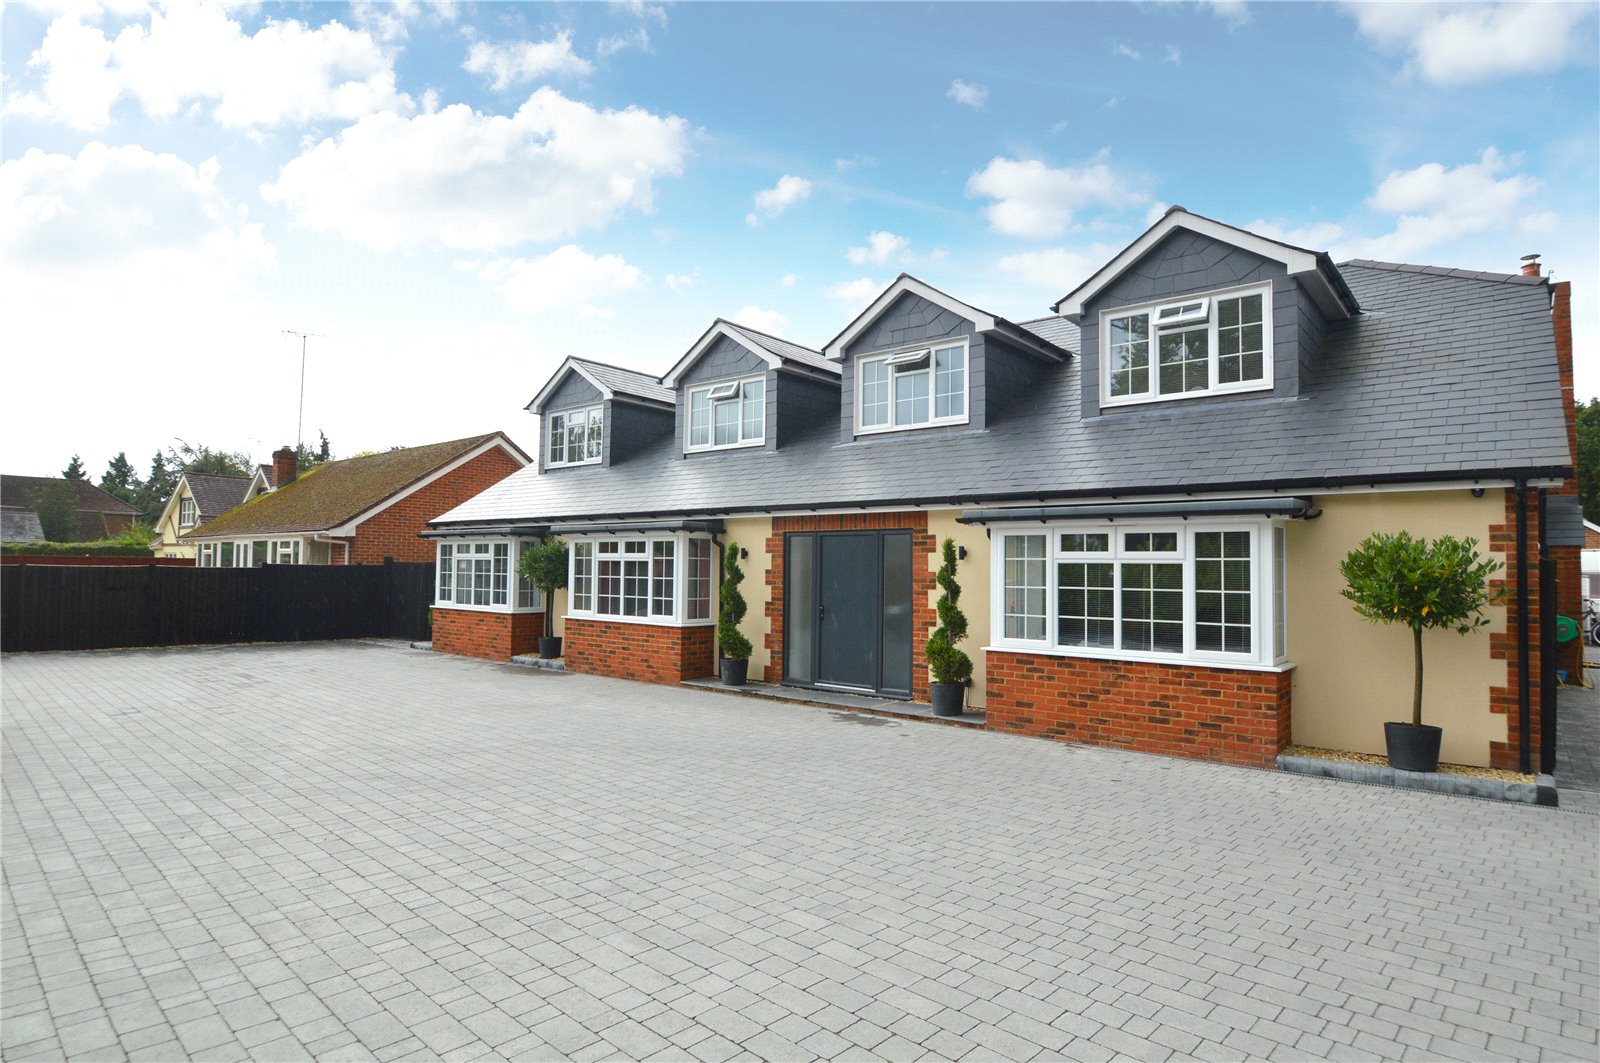 Property for sale   6 Bedroom  House property in Finchampstead, Berkshire, RG40     